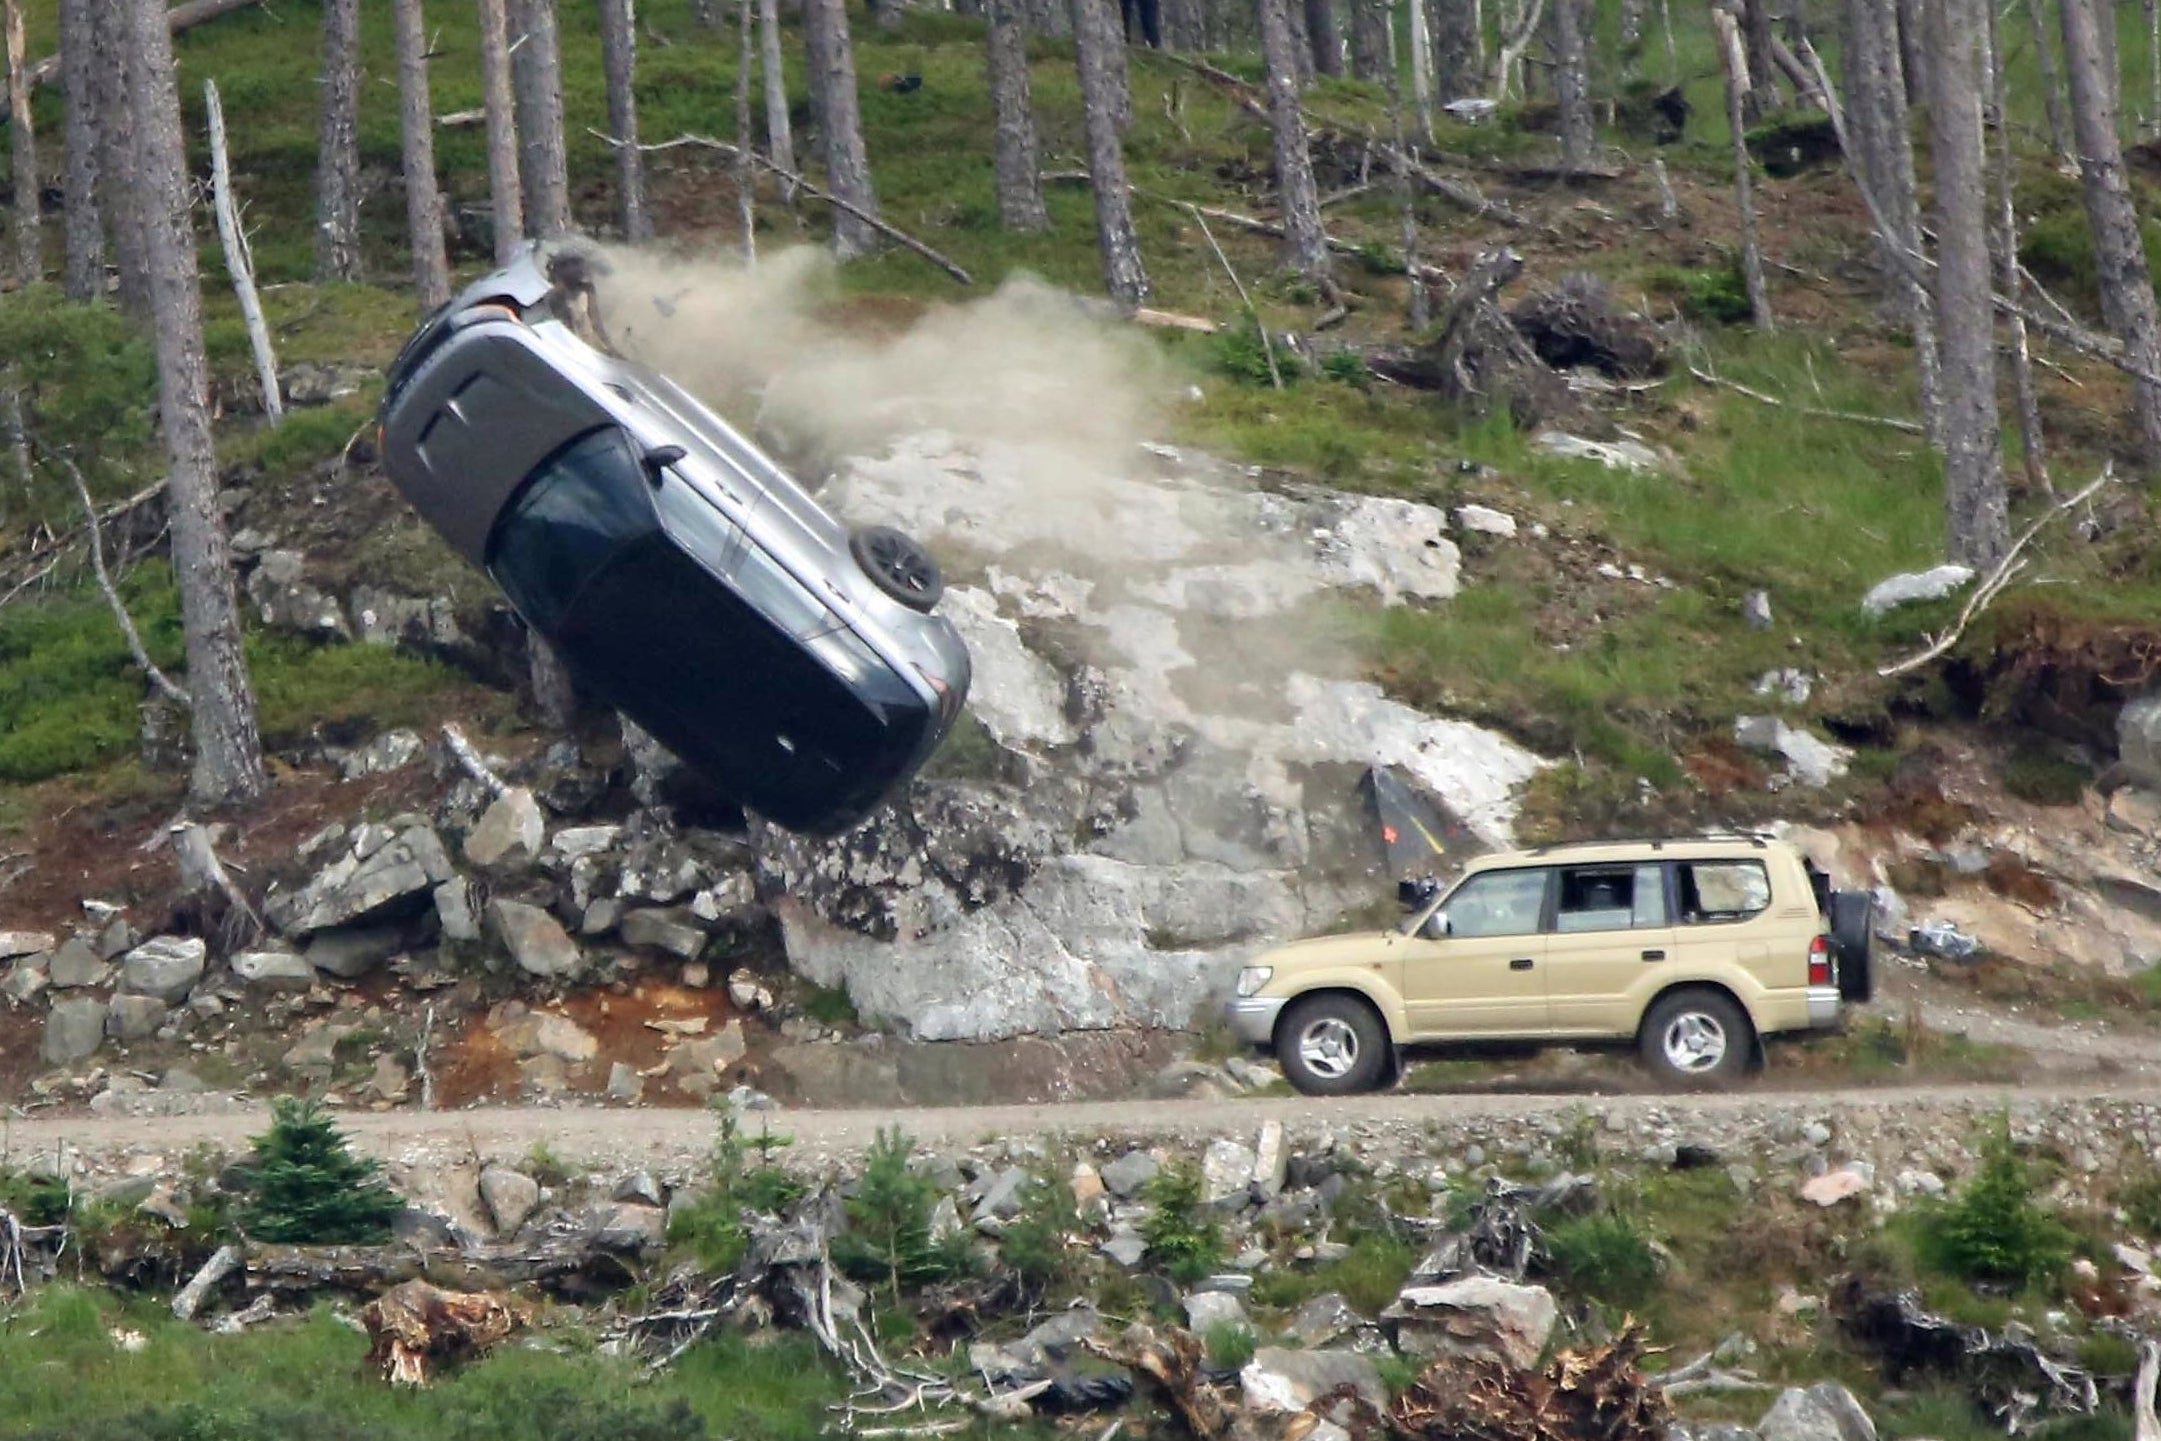 Bond-25-filming-New-photos-show-car-flipped-onto-its-roof-in-dramatic-chase-scene.jpg?fit=2161%2C1441&ssl=1